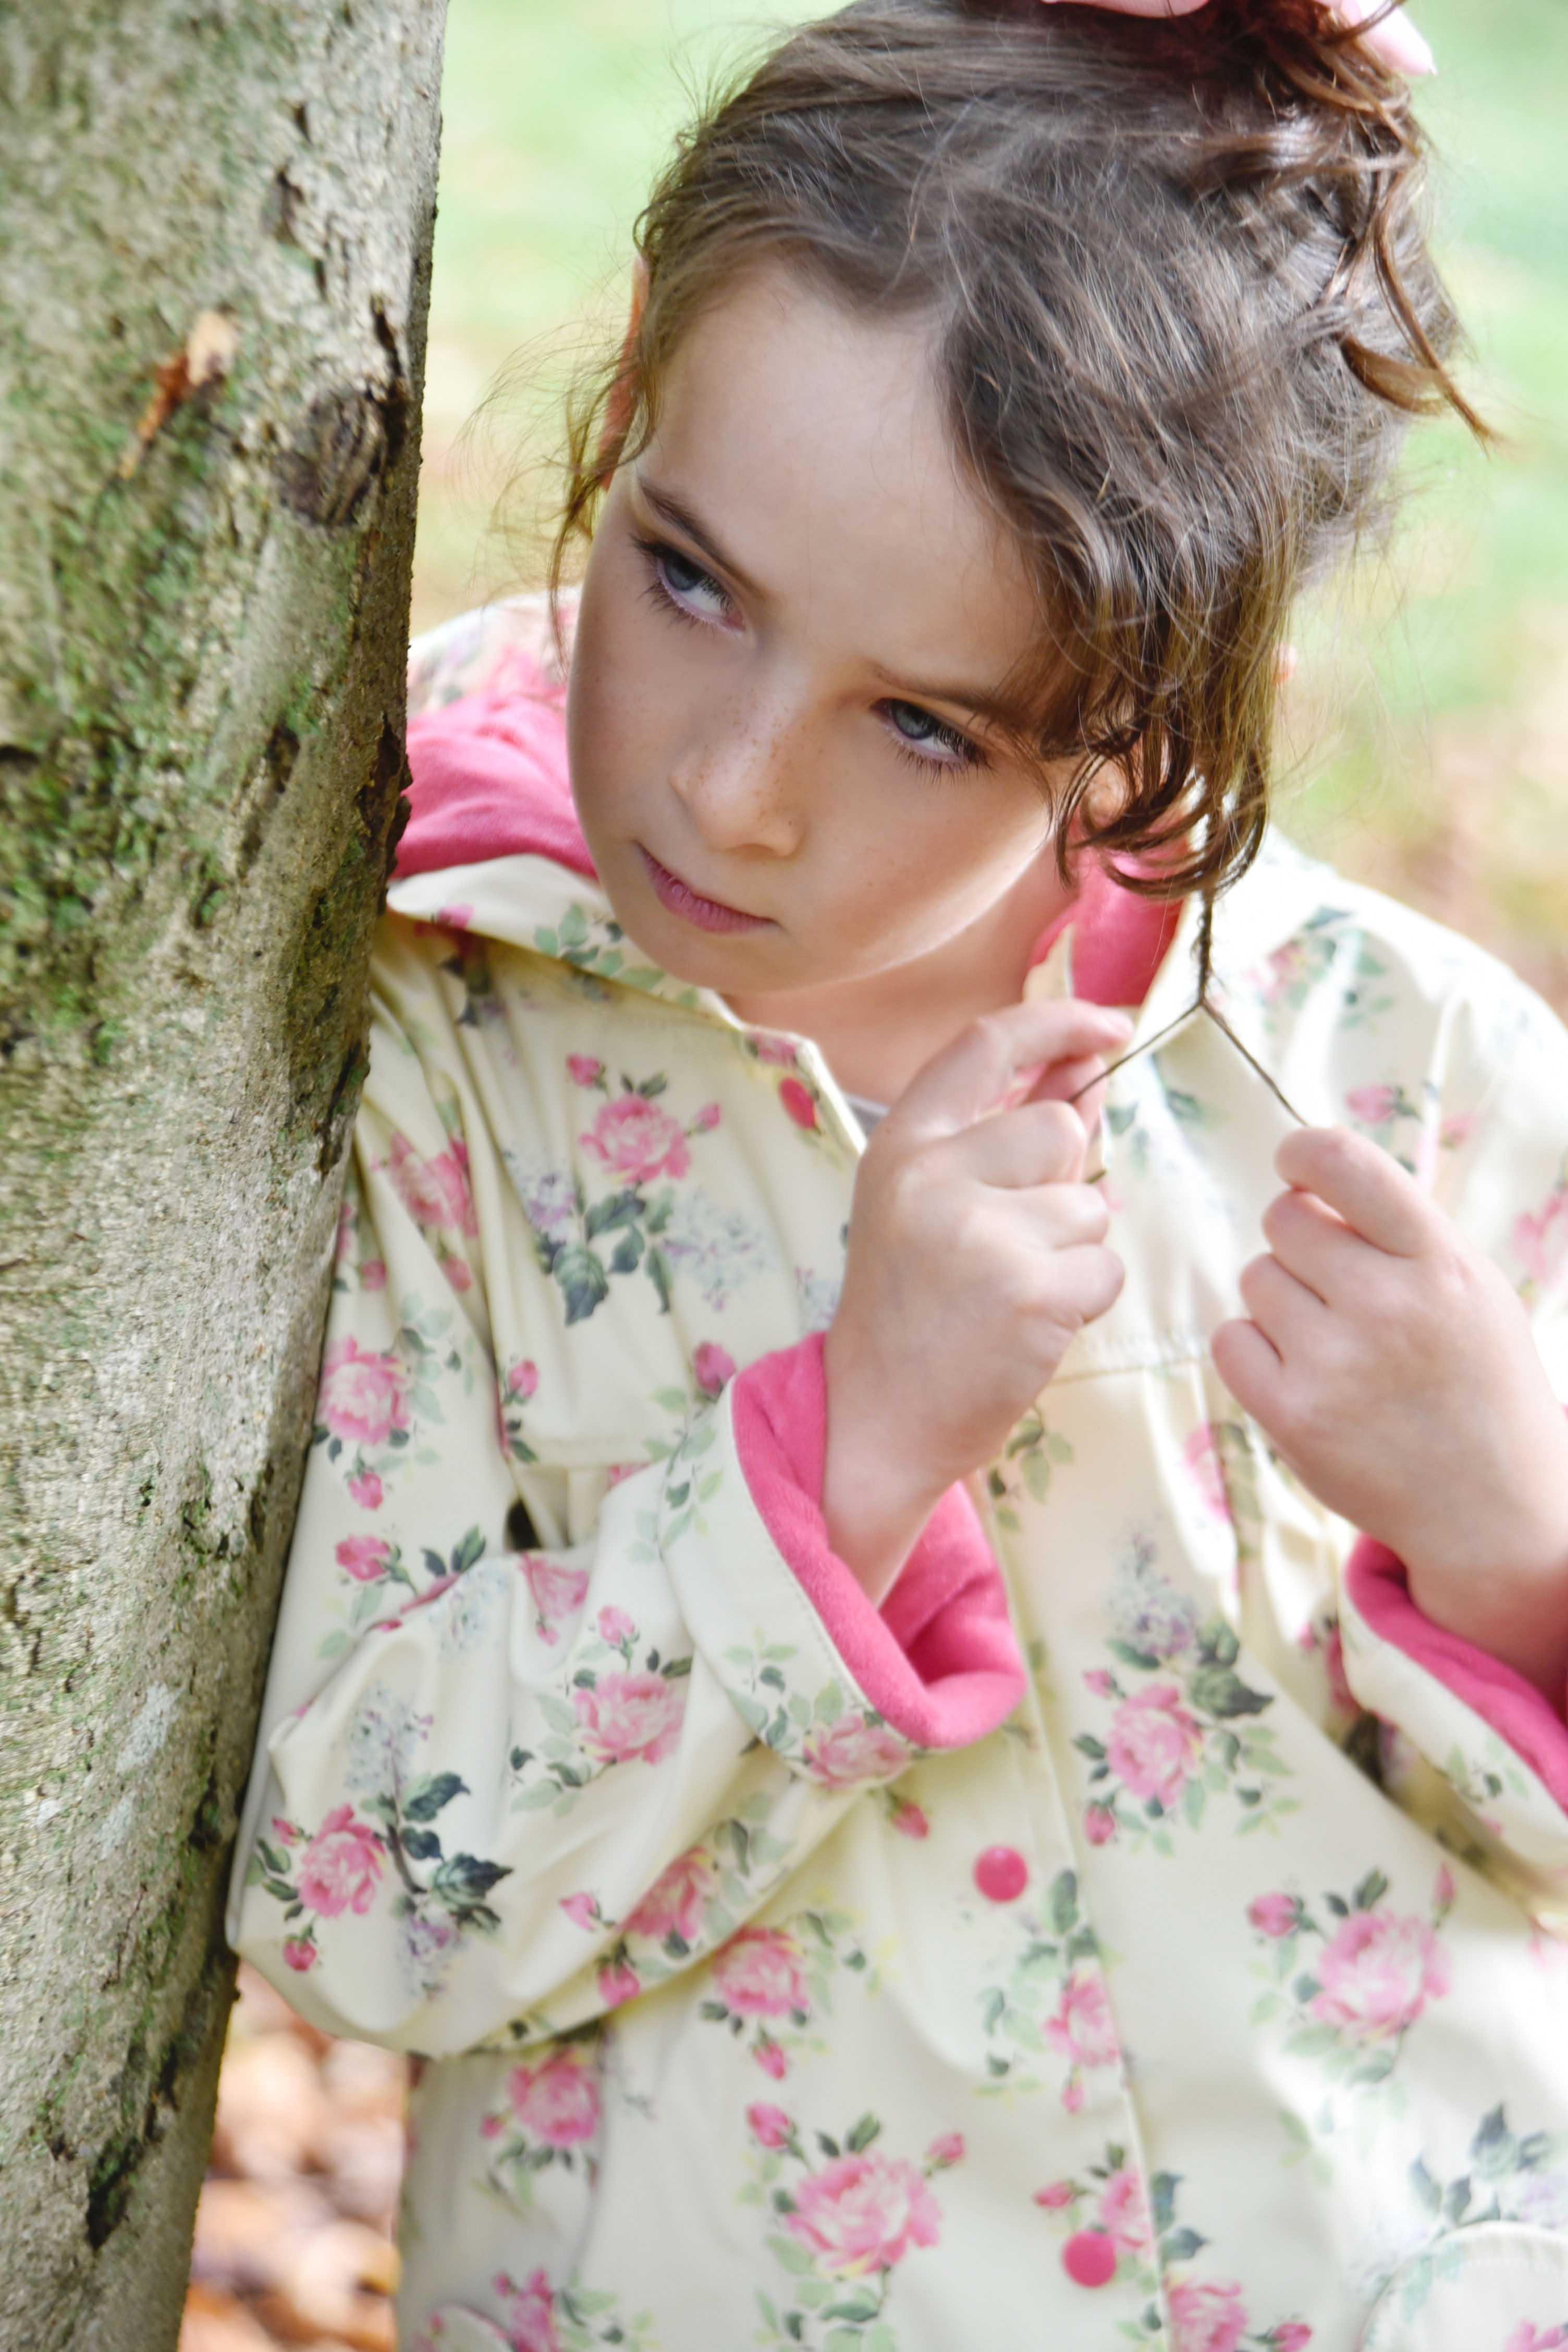 Young Girls Fashion Image, Kids portraits, Eclectic Photography, Michelle Nyulassie, Brighton